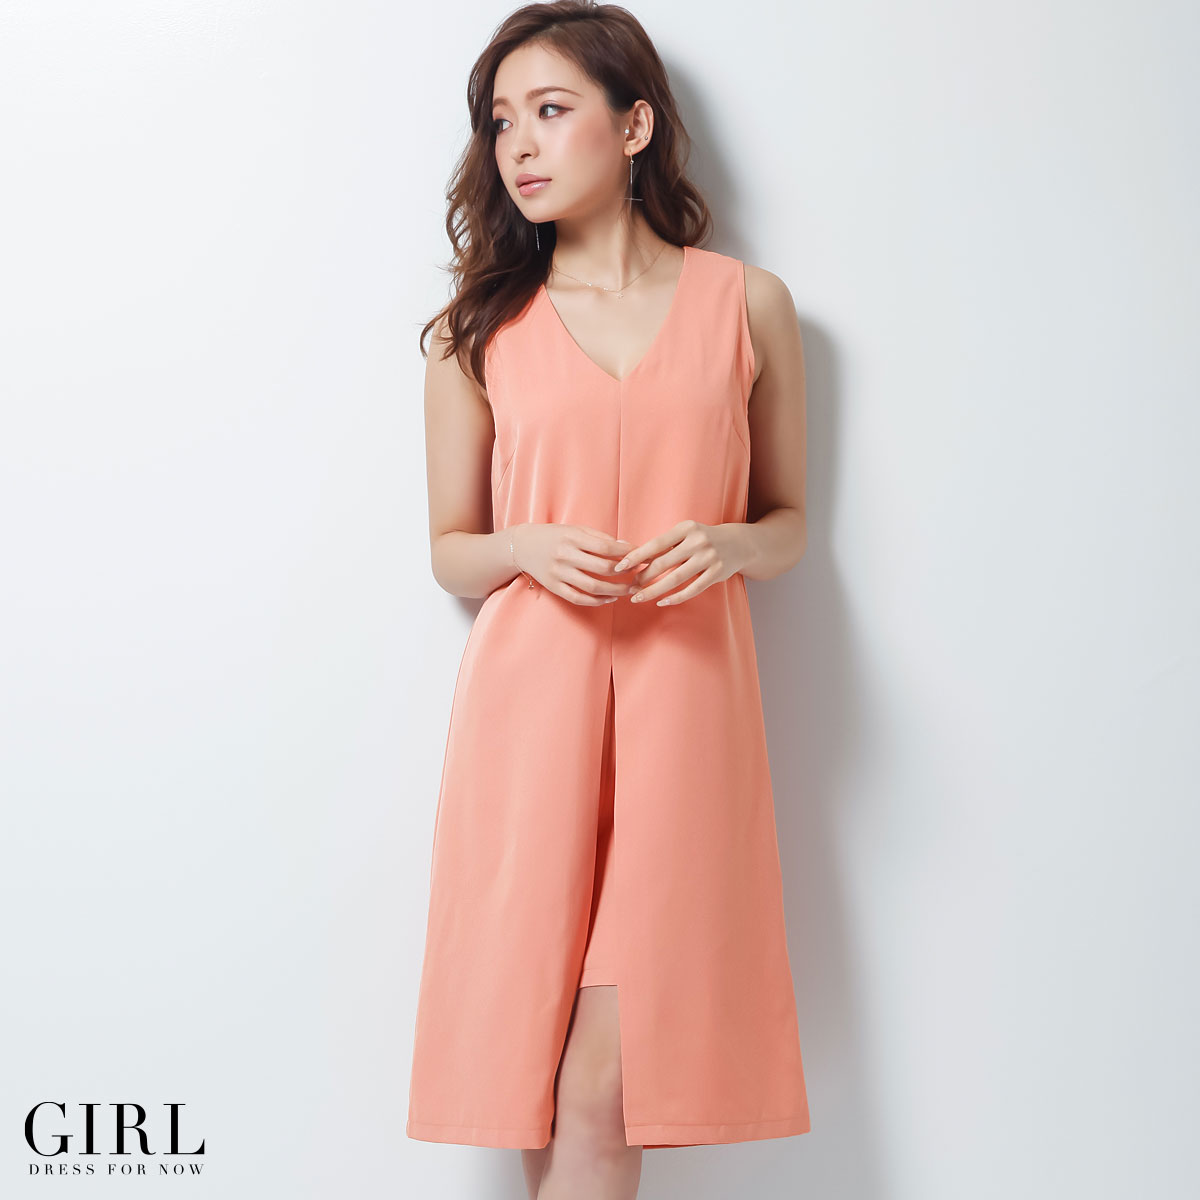 74f15cc41a1f7 Pants dress · # All-in-one · # Sleeveless · # Sleeveless · # Dinner · #  Casual